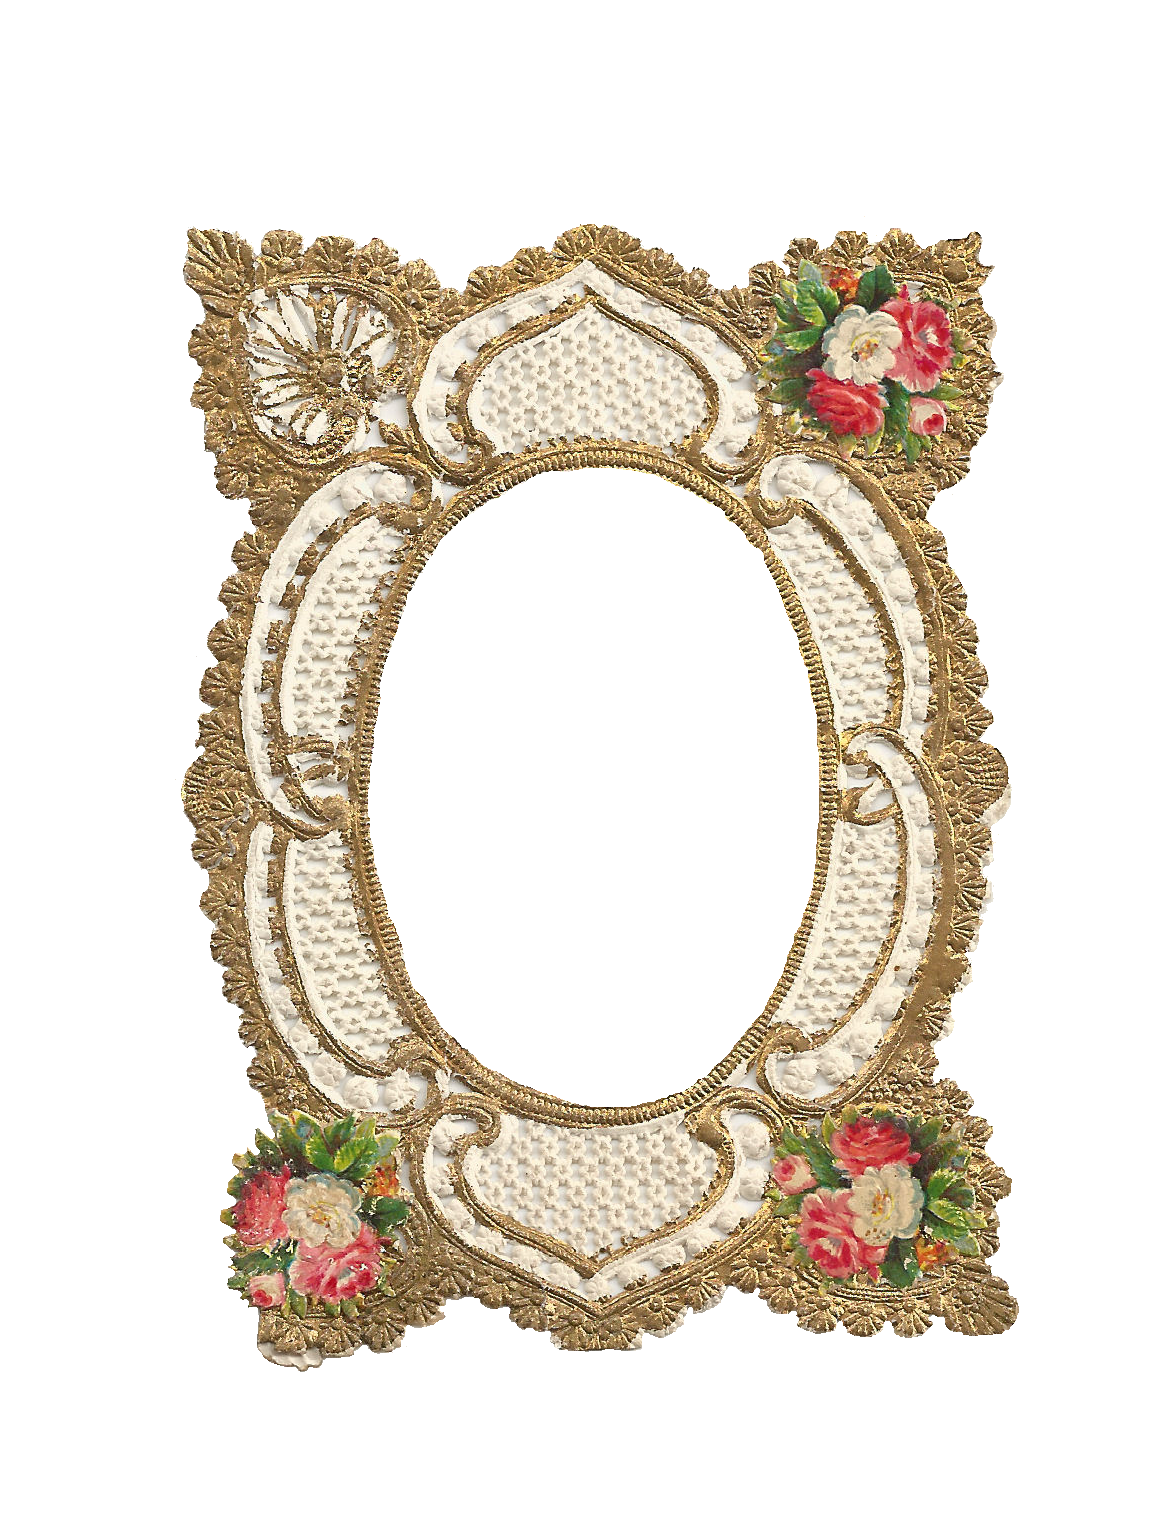 Free Frame Clip Art: Digital Frame Gold Filigree Design with Rose